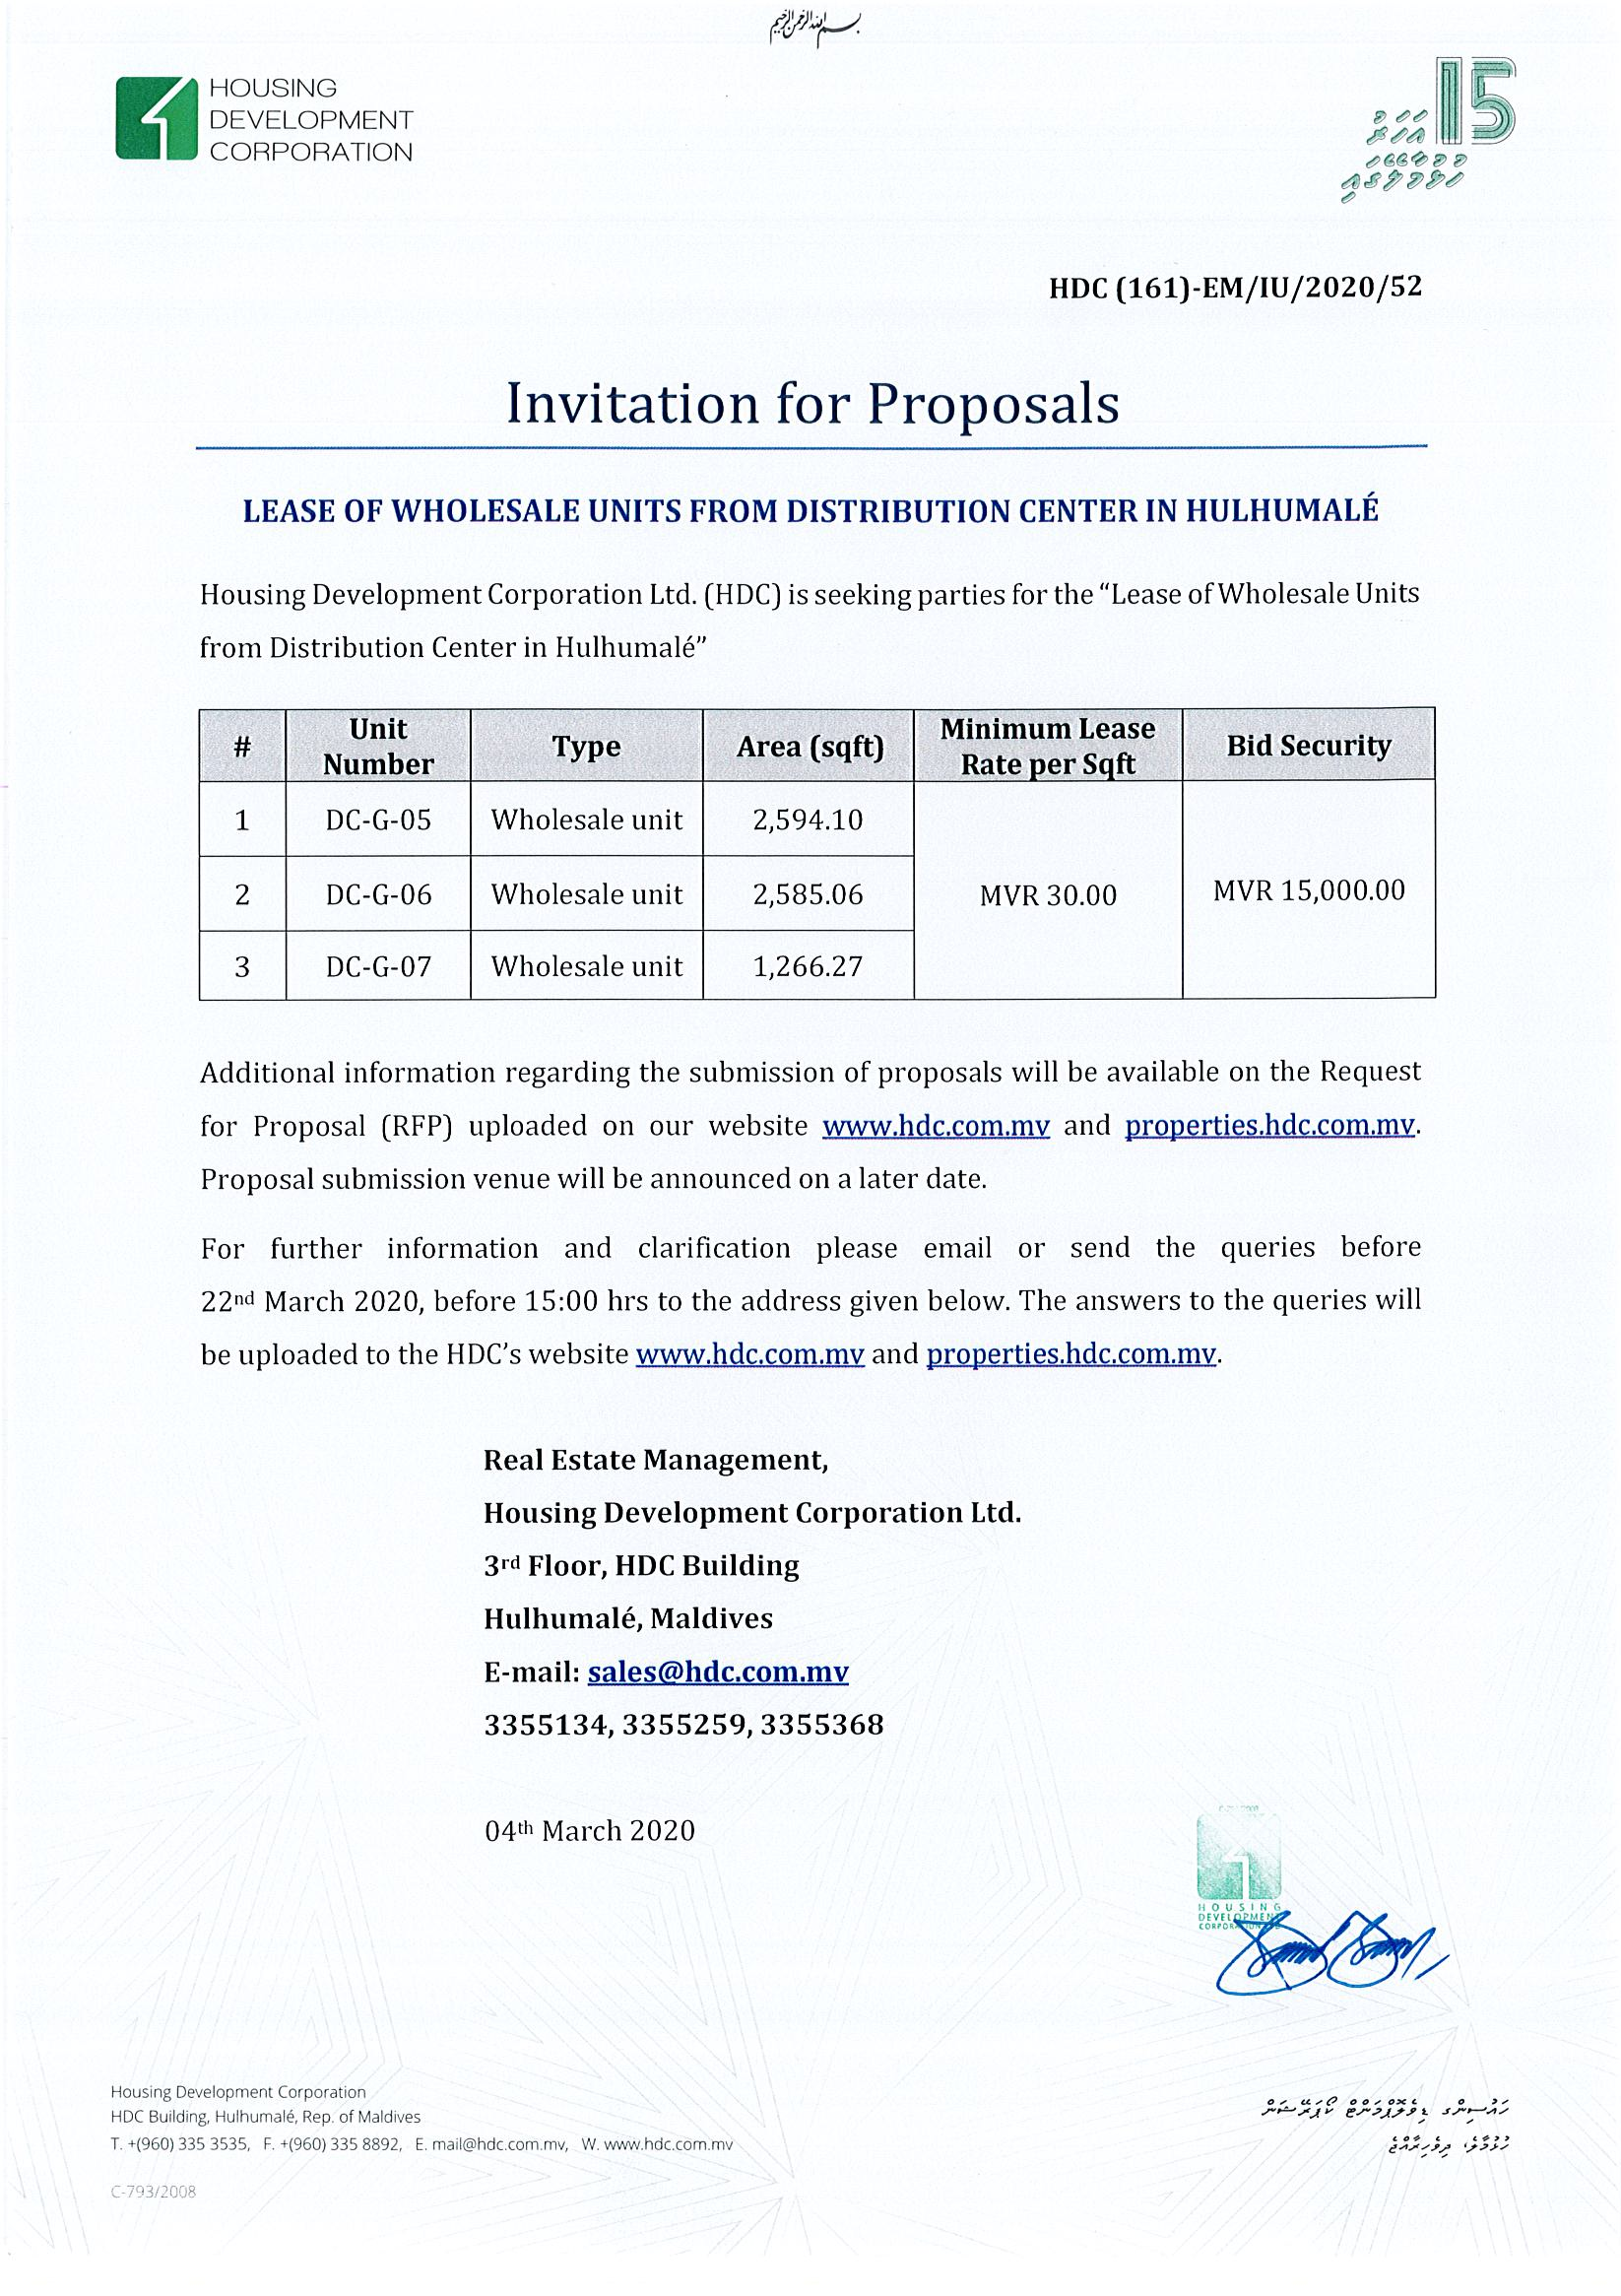 Lease of Wholesale Units from Distribution Center in Hulhumalé